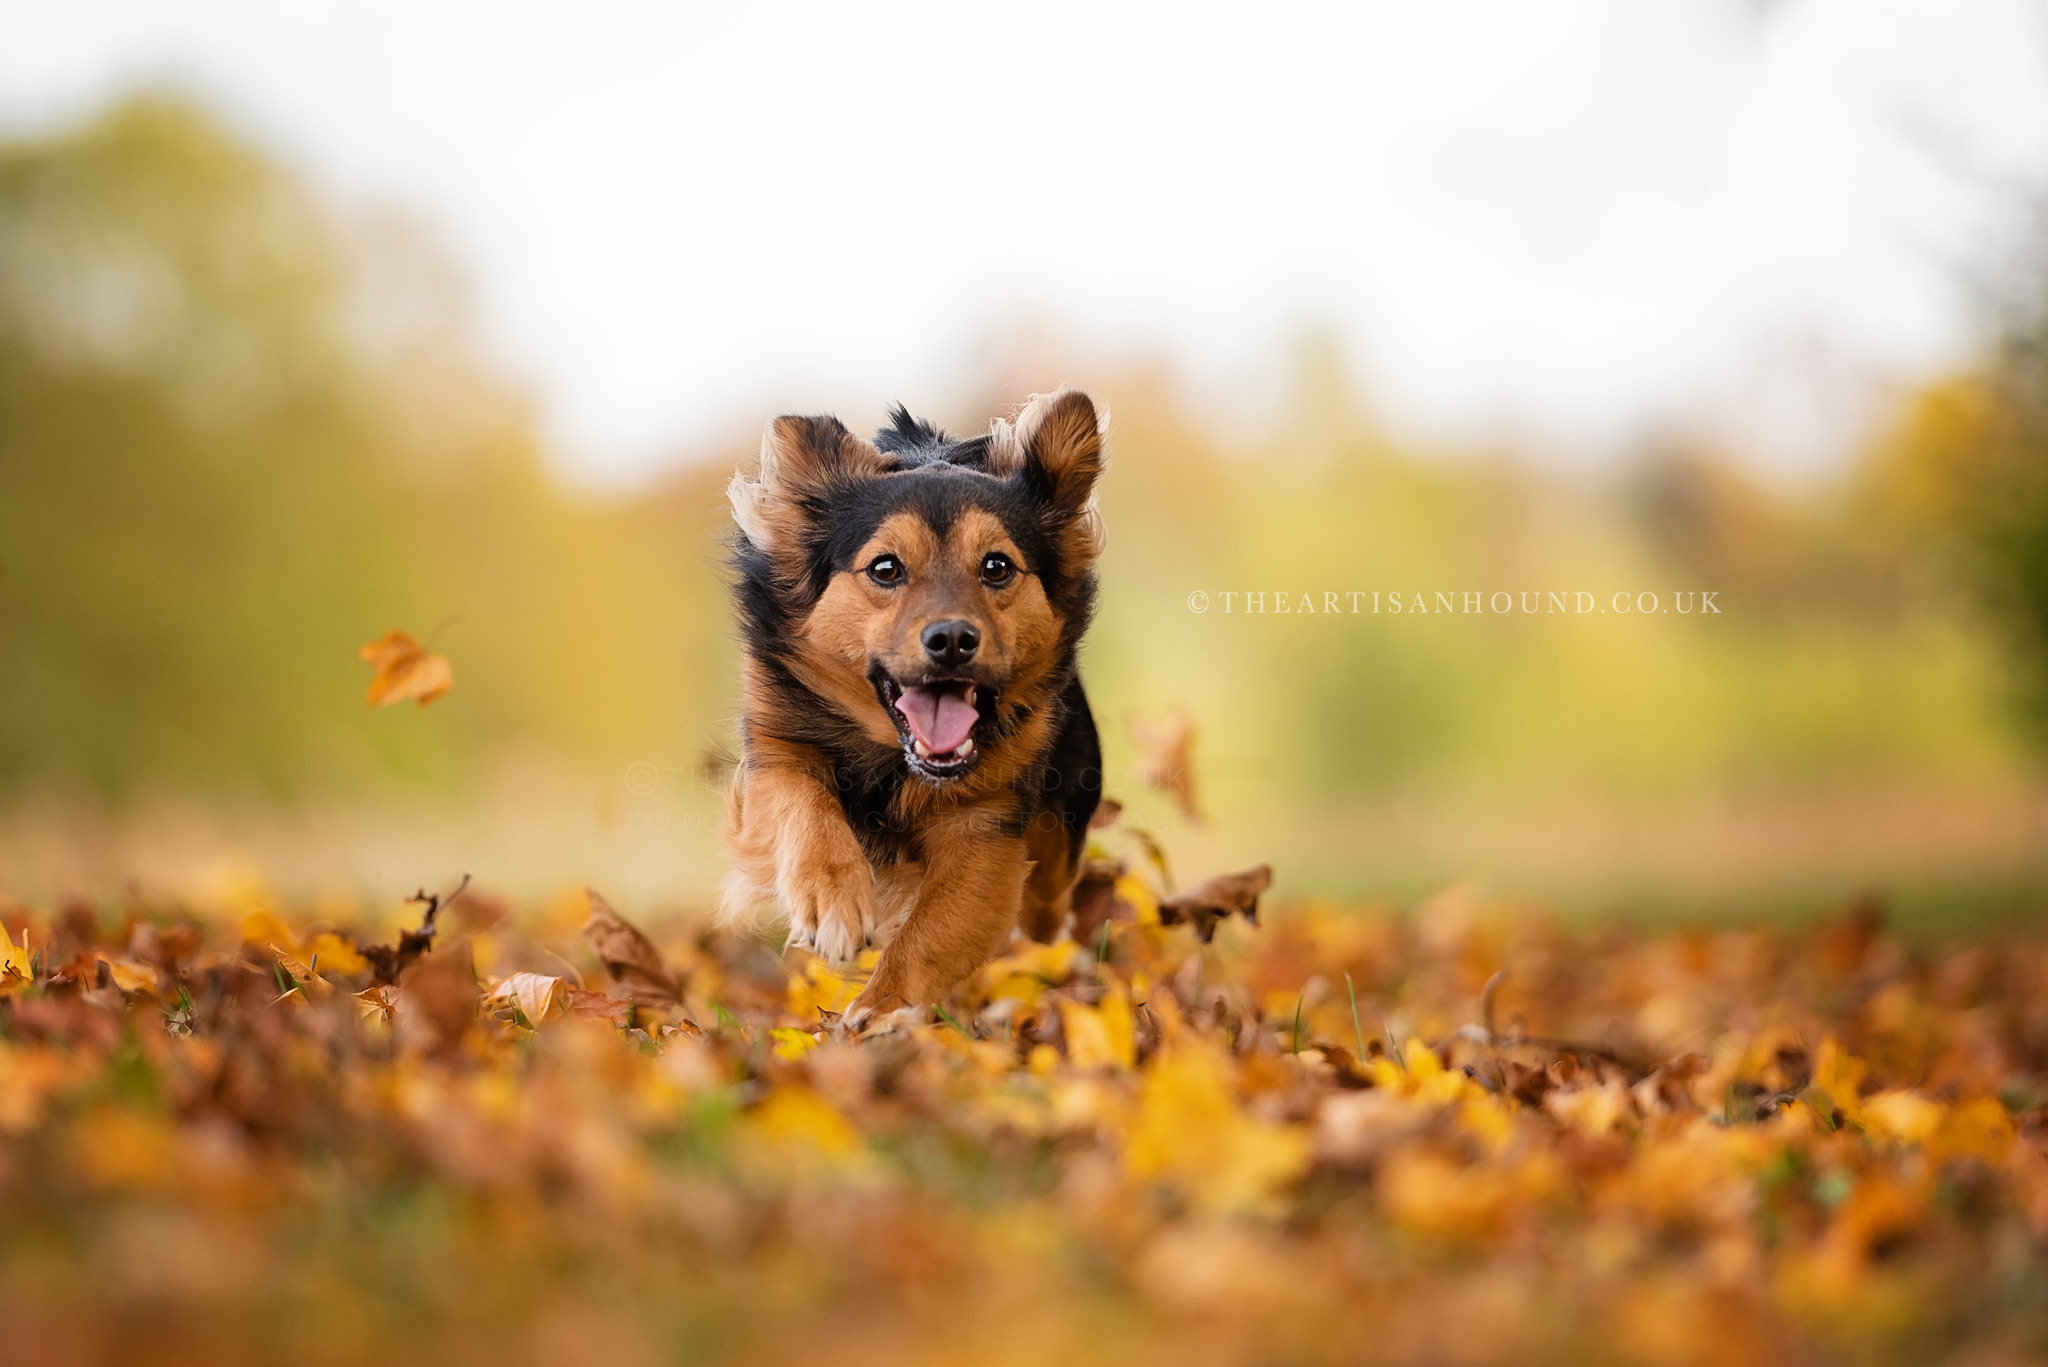 Little dog running through autumn leaves